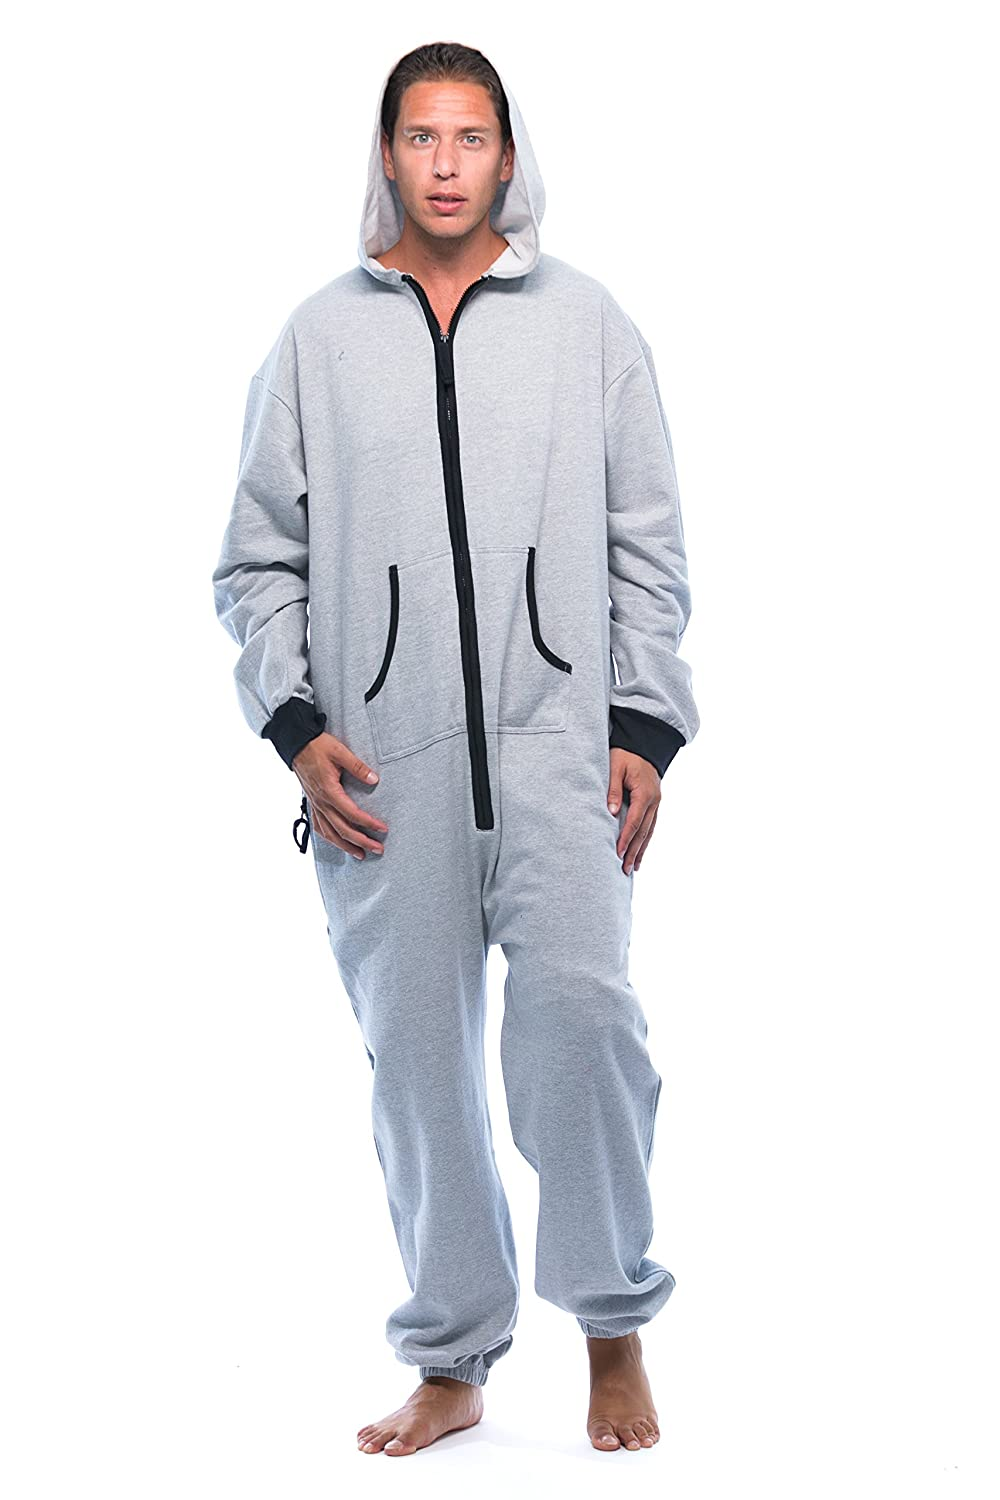 #followme Jumpsuit Adult Onesie Pajamas